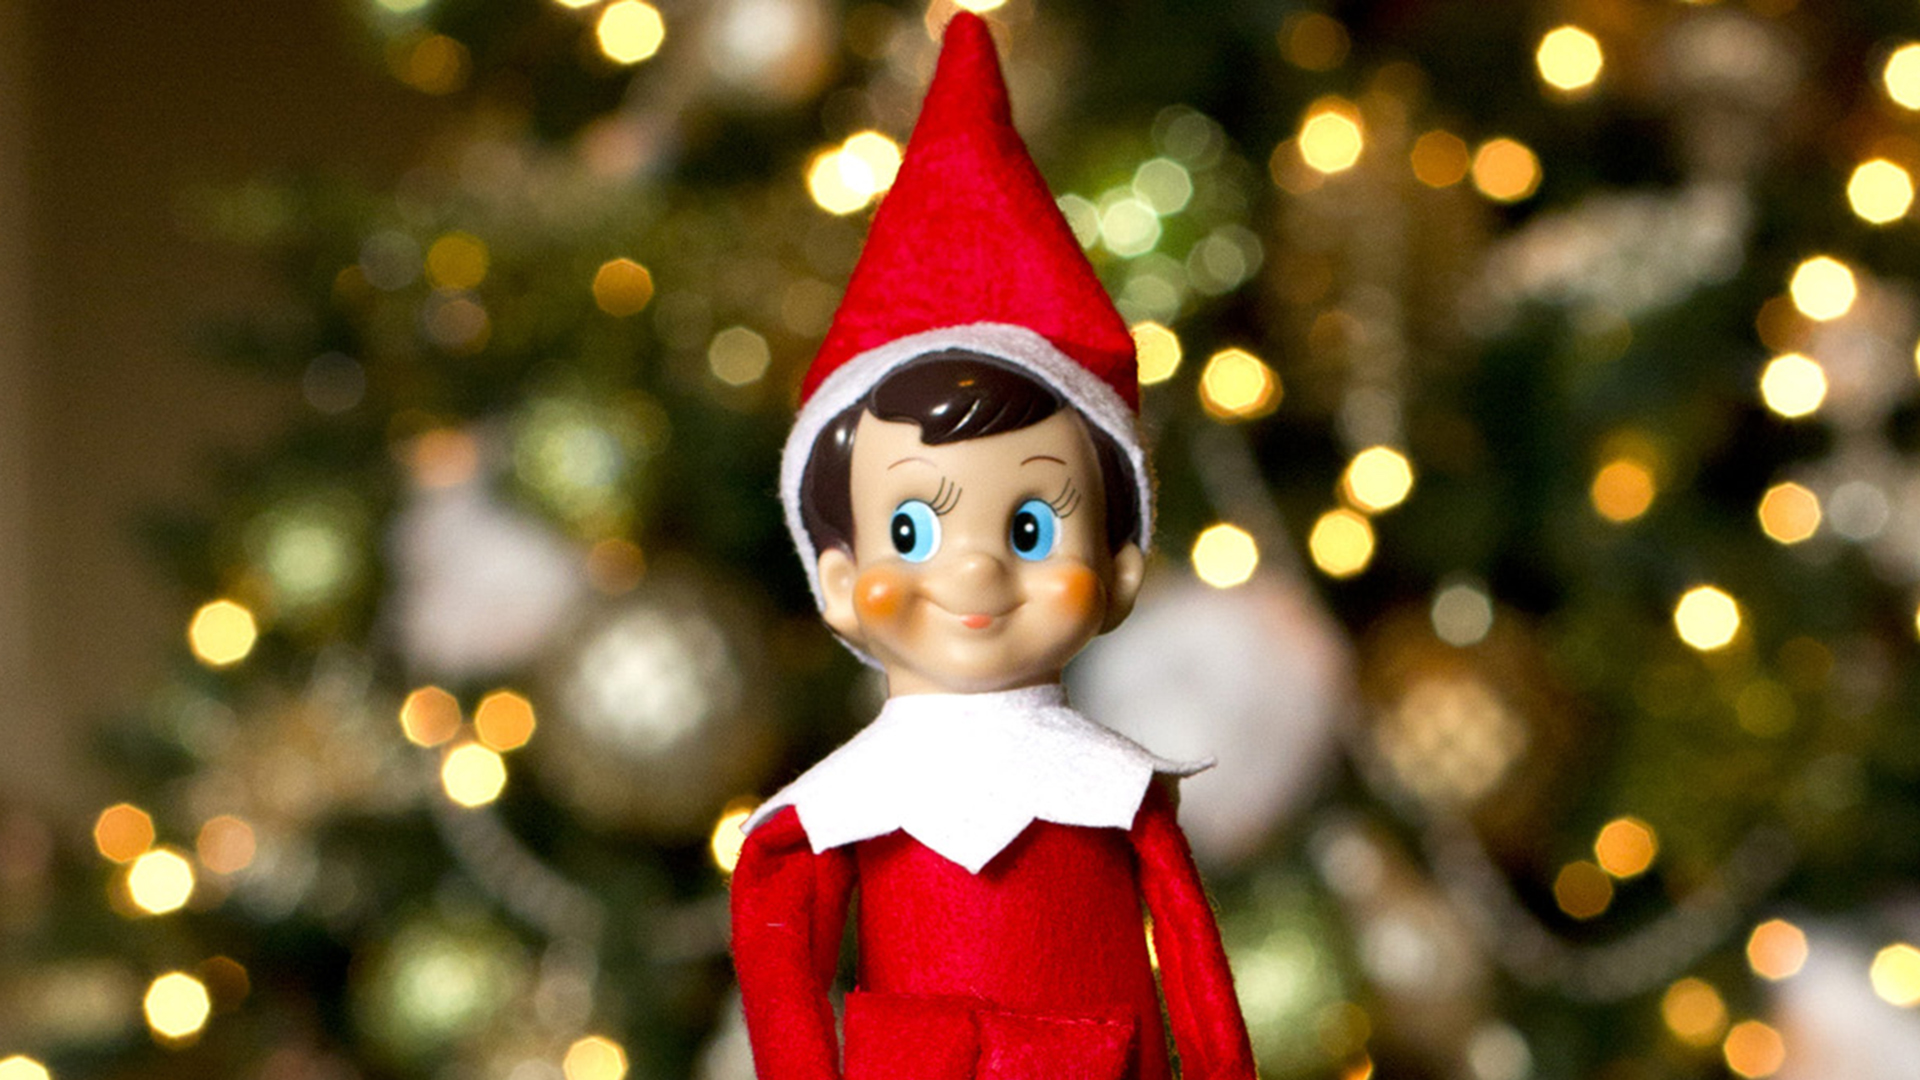 elf-shelf-today-tease-151218_ad4532b5c378f6cdacc1998b8e18de7c.jpg